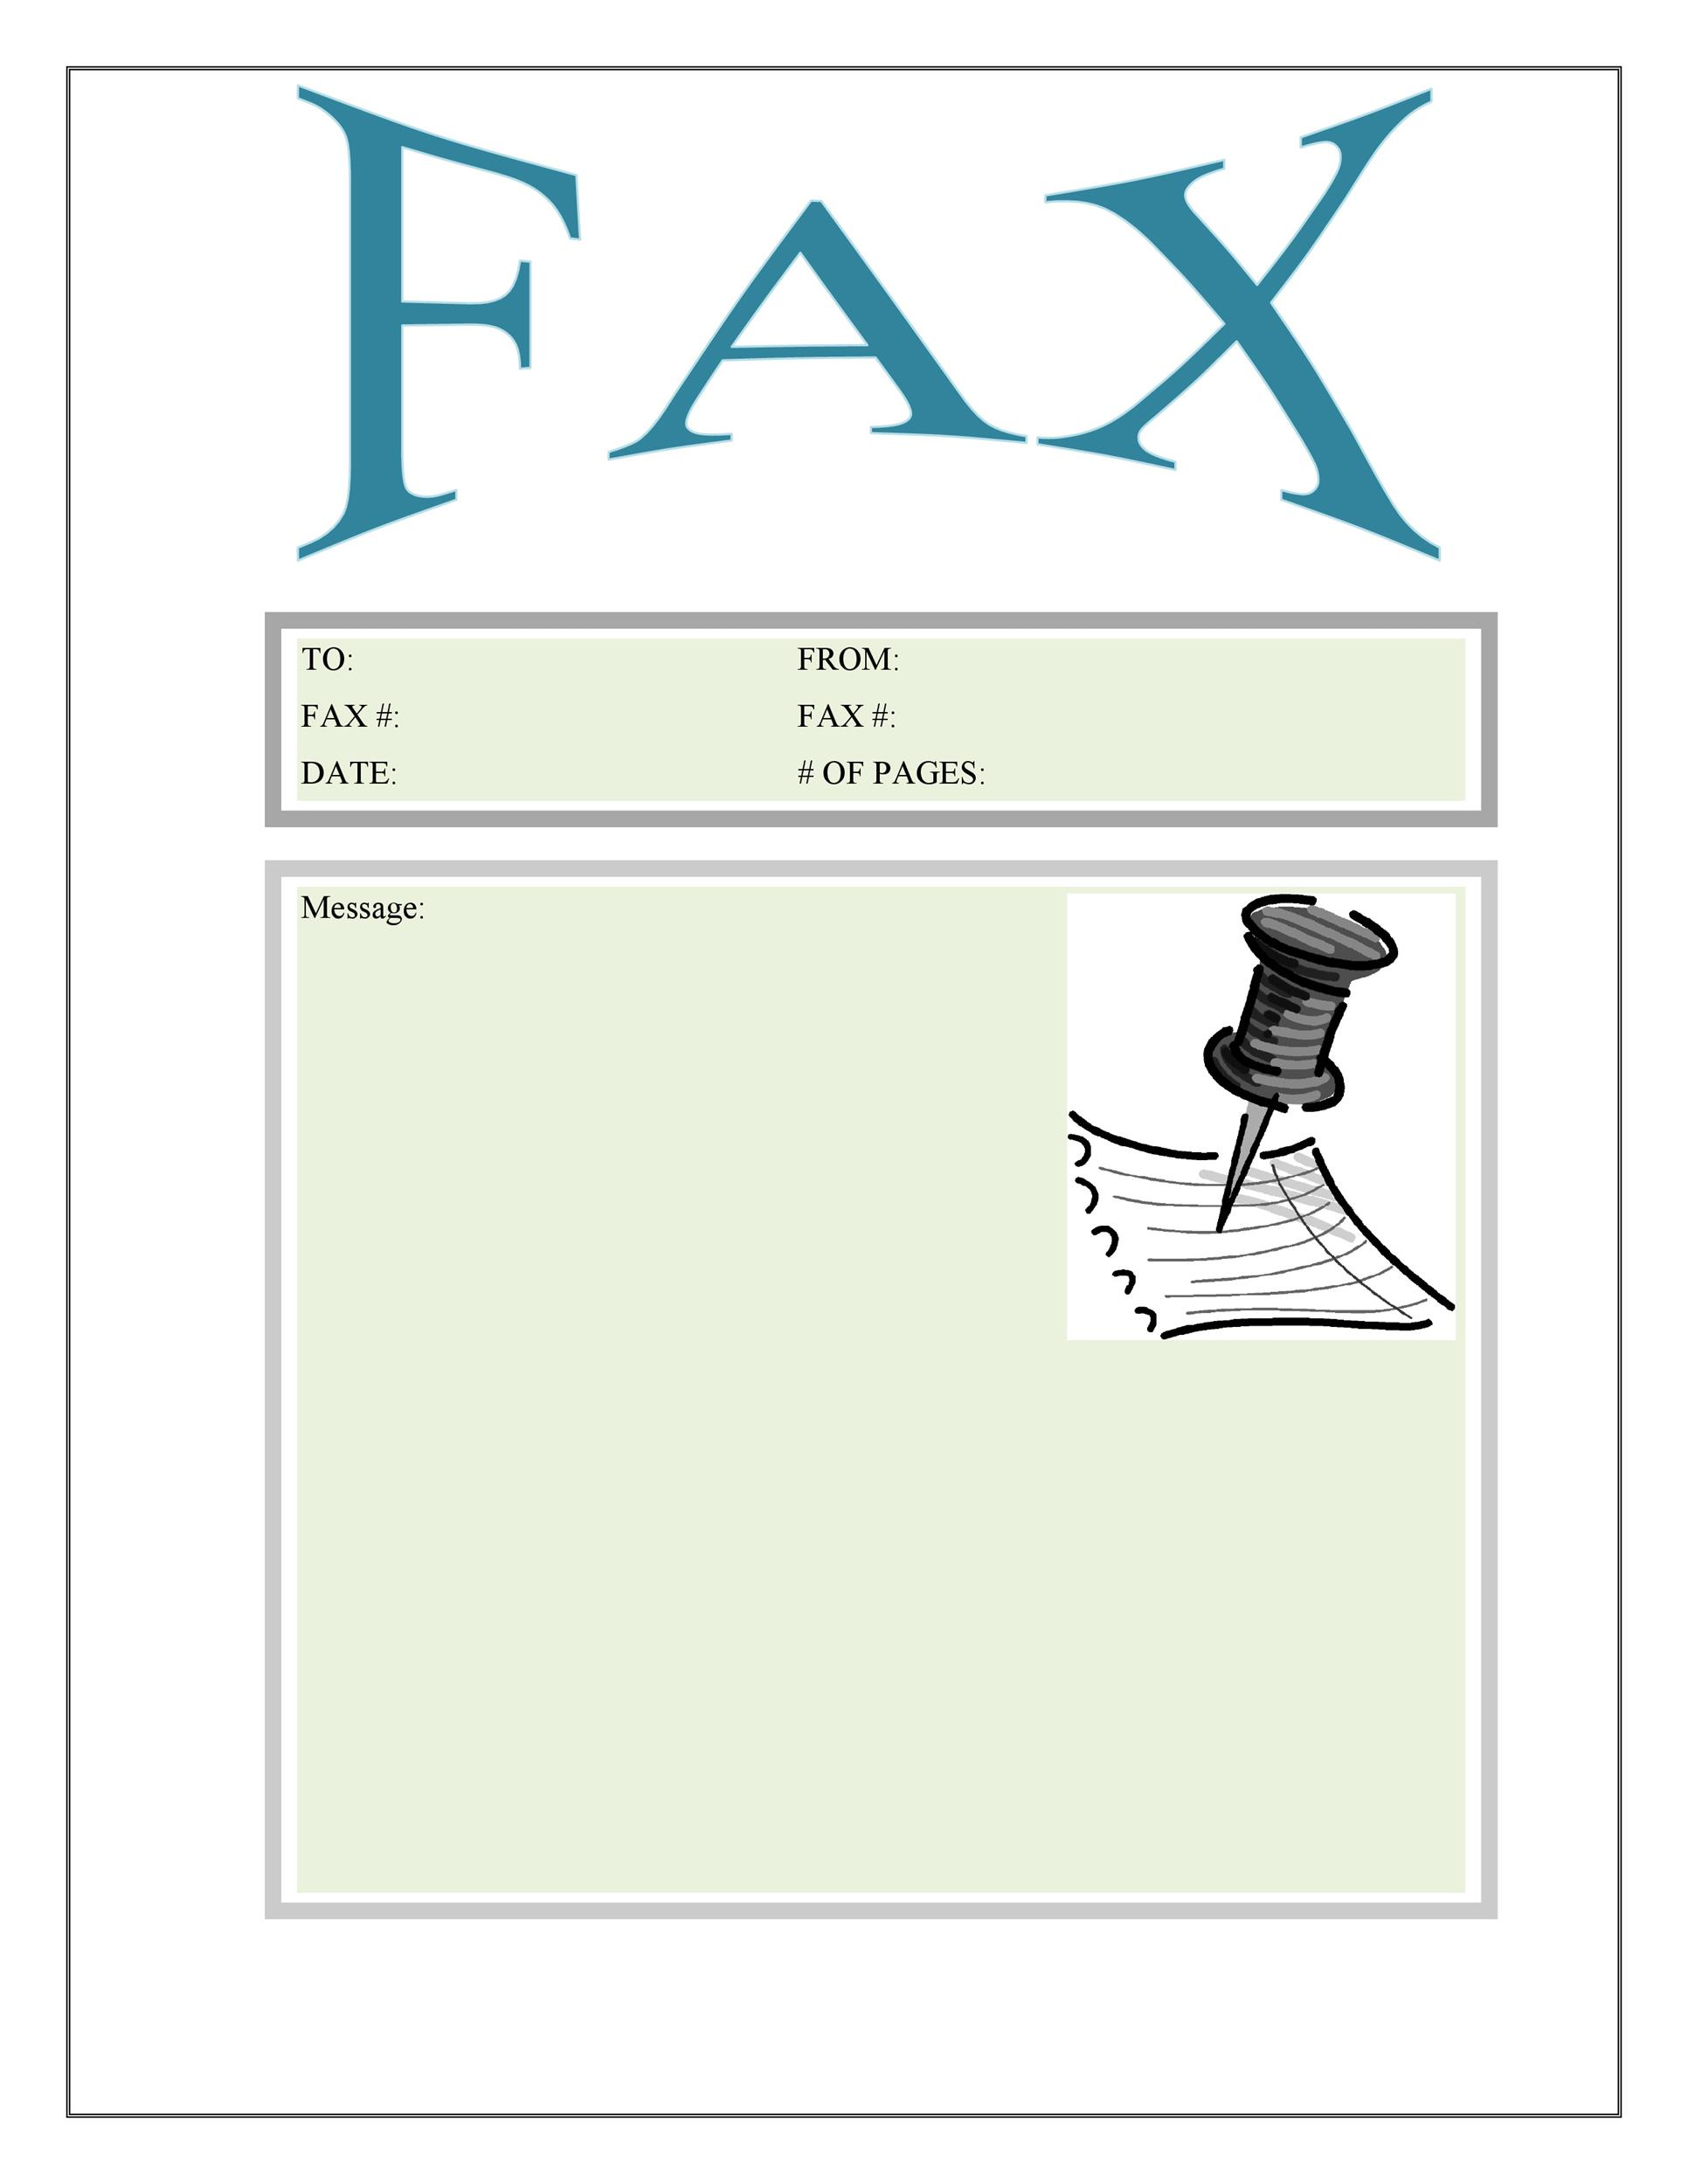 Printable Fax Cover Sheet Templates  Template Lab